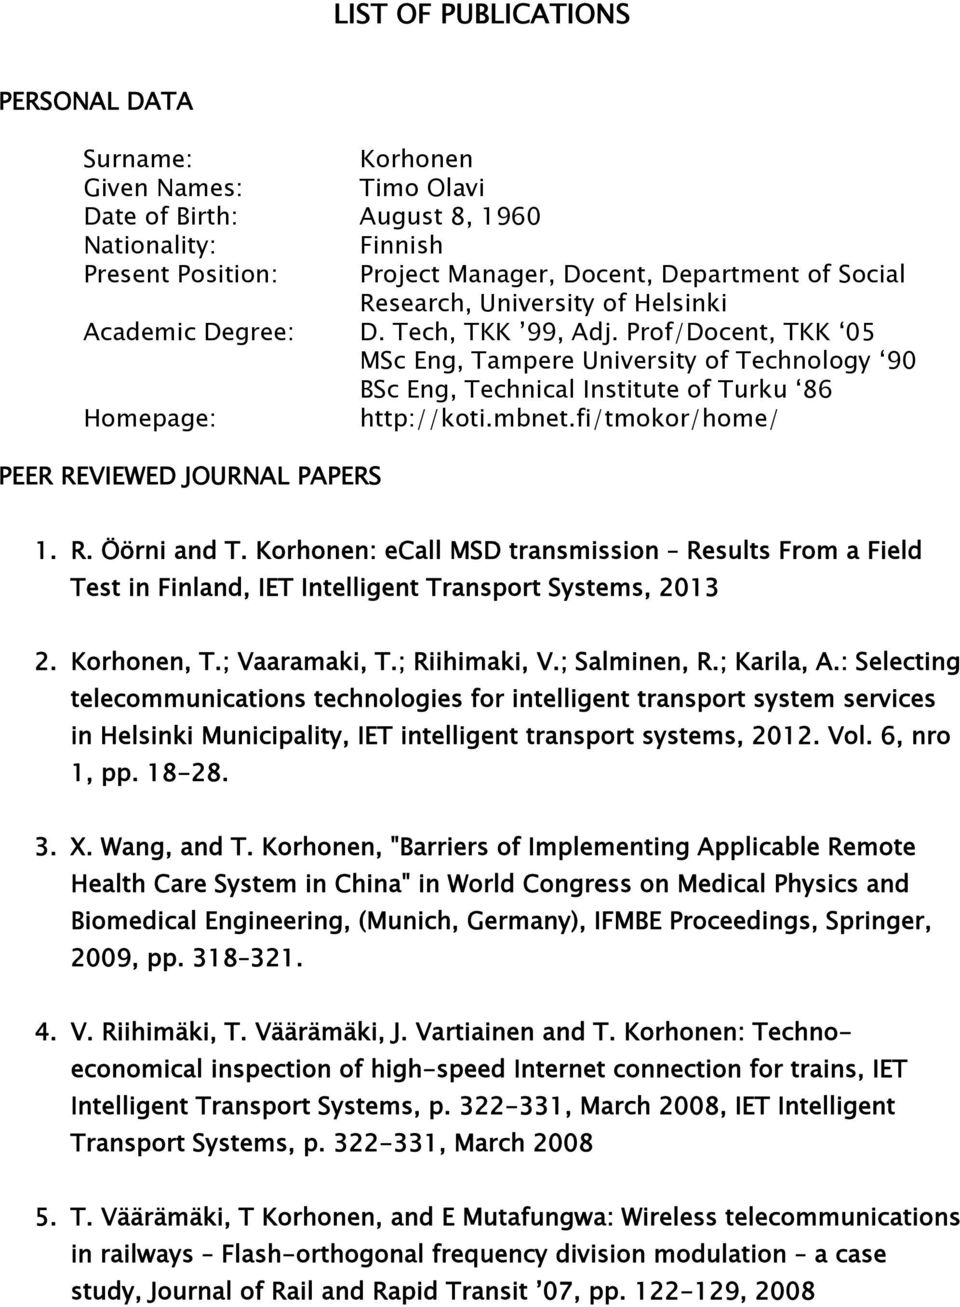 Prof/Docent, TKK 05 MSc Eng, Tampere University of Technology 90 BSc Eng, Technical Institute of Turku 86 Homepage: PEER REVIEWED JOURNAL PAPERS http://koti.mbnet.fi/tmokor/home/ 1. R. Öörni and T.